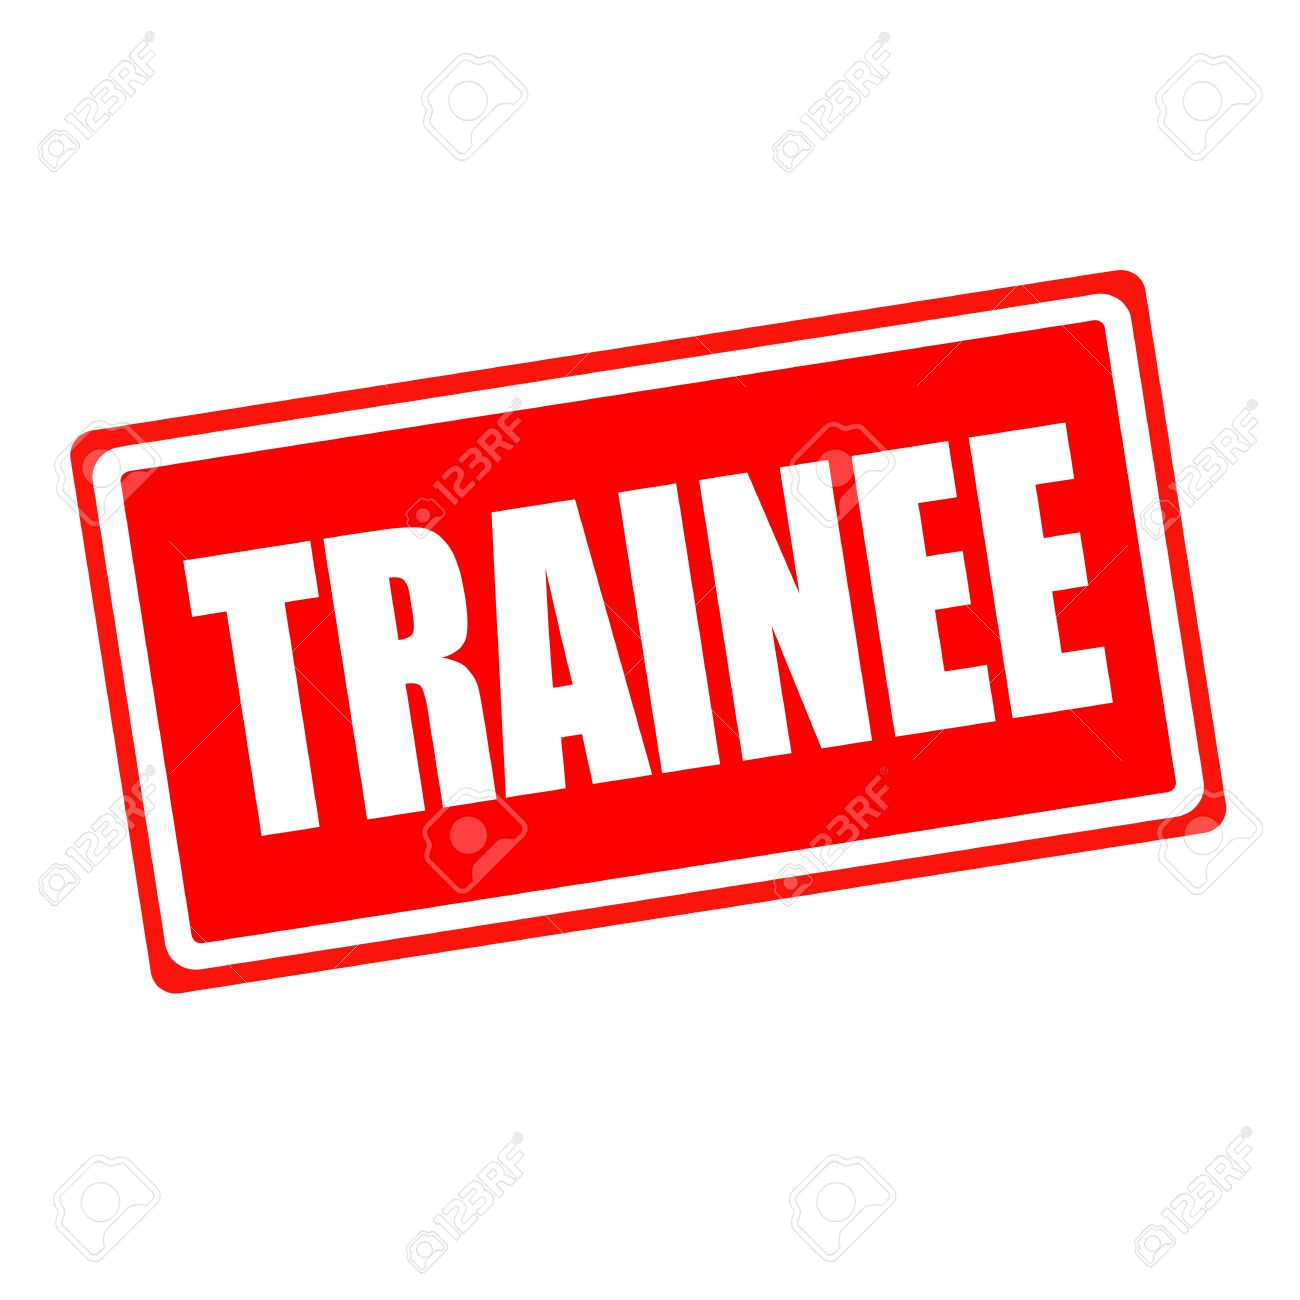 trainee white stamp text on red backgroud stock photo picture and